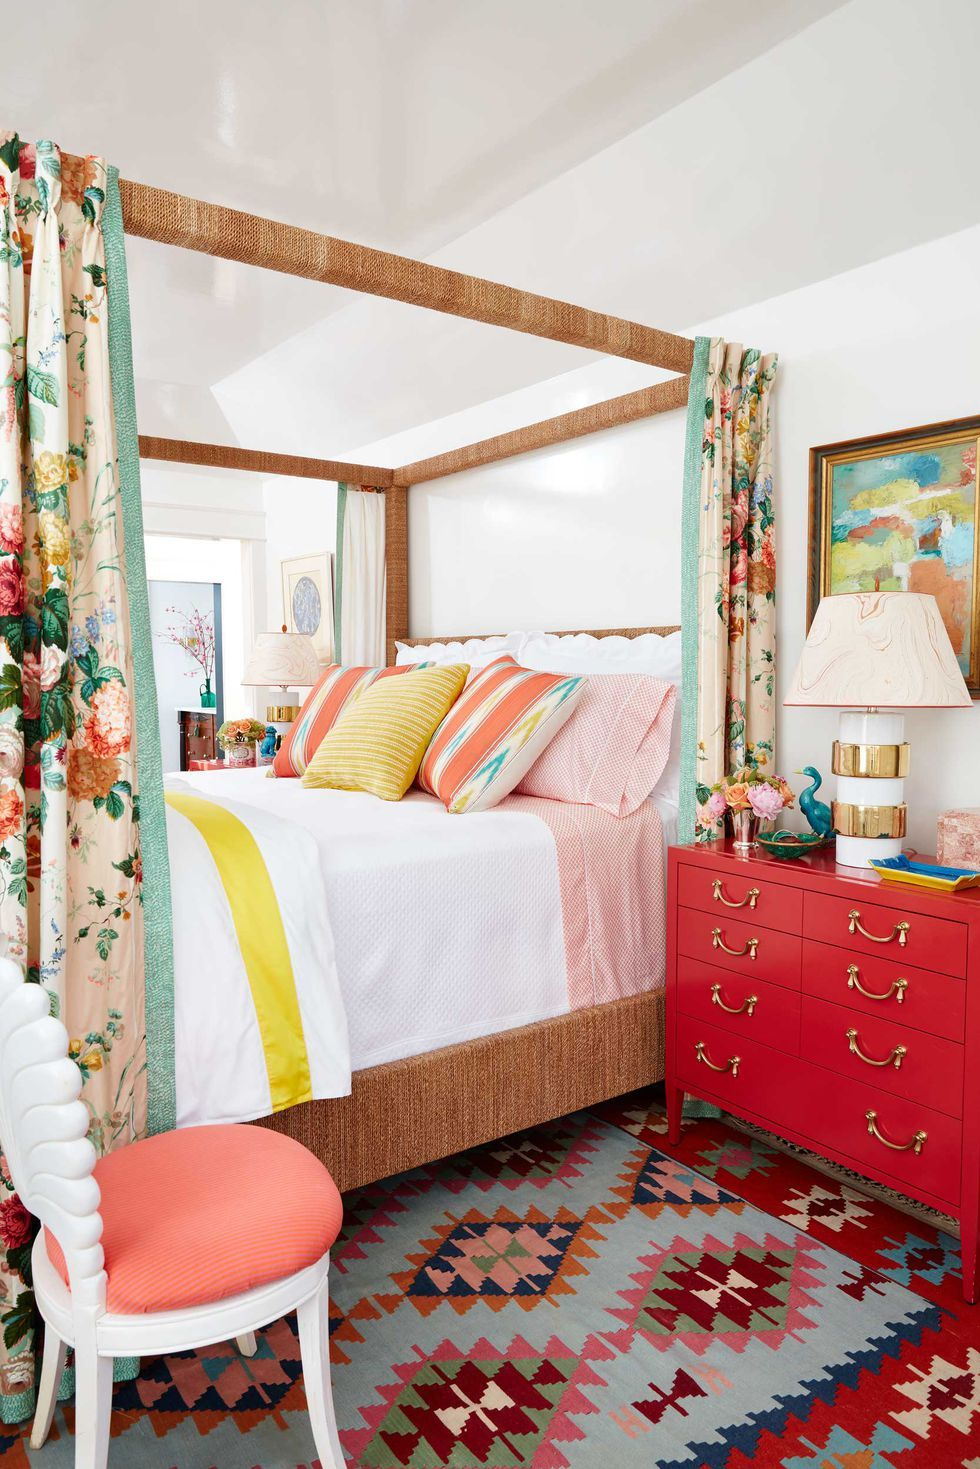 3 Great Tricks To Making Your Small Bedroom Feel Like A Master Suite Bedroom Decorating Tips How To Make Bed Beautiful Homes Napa chictransitional master bedroom